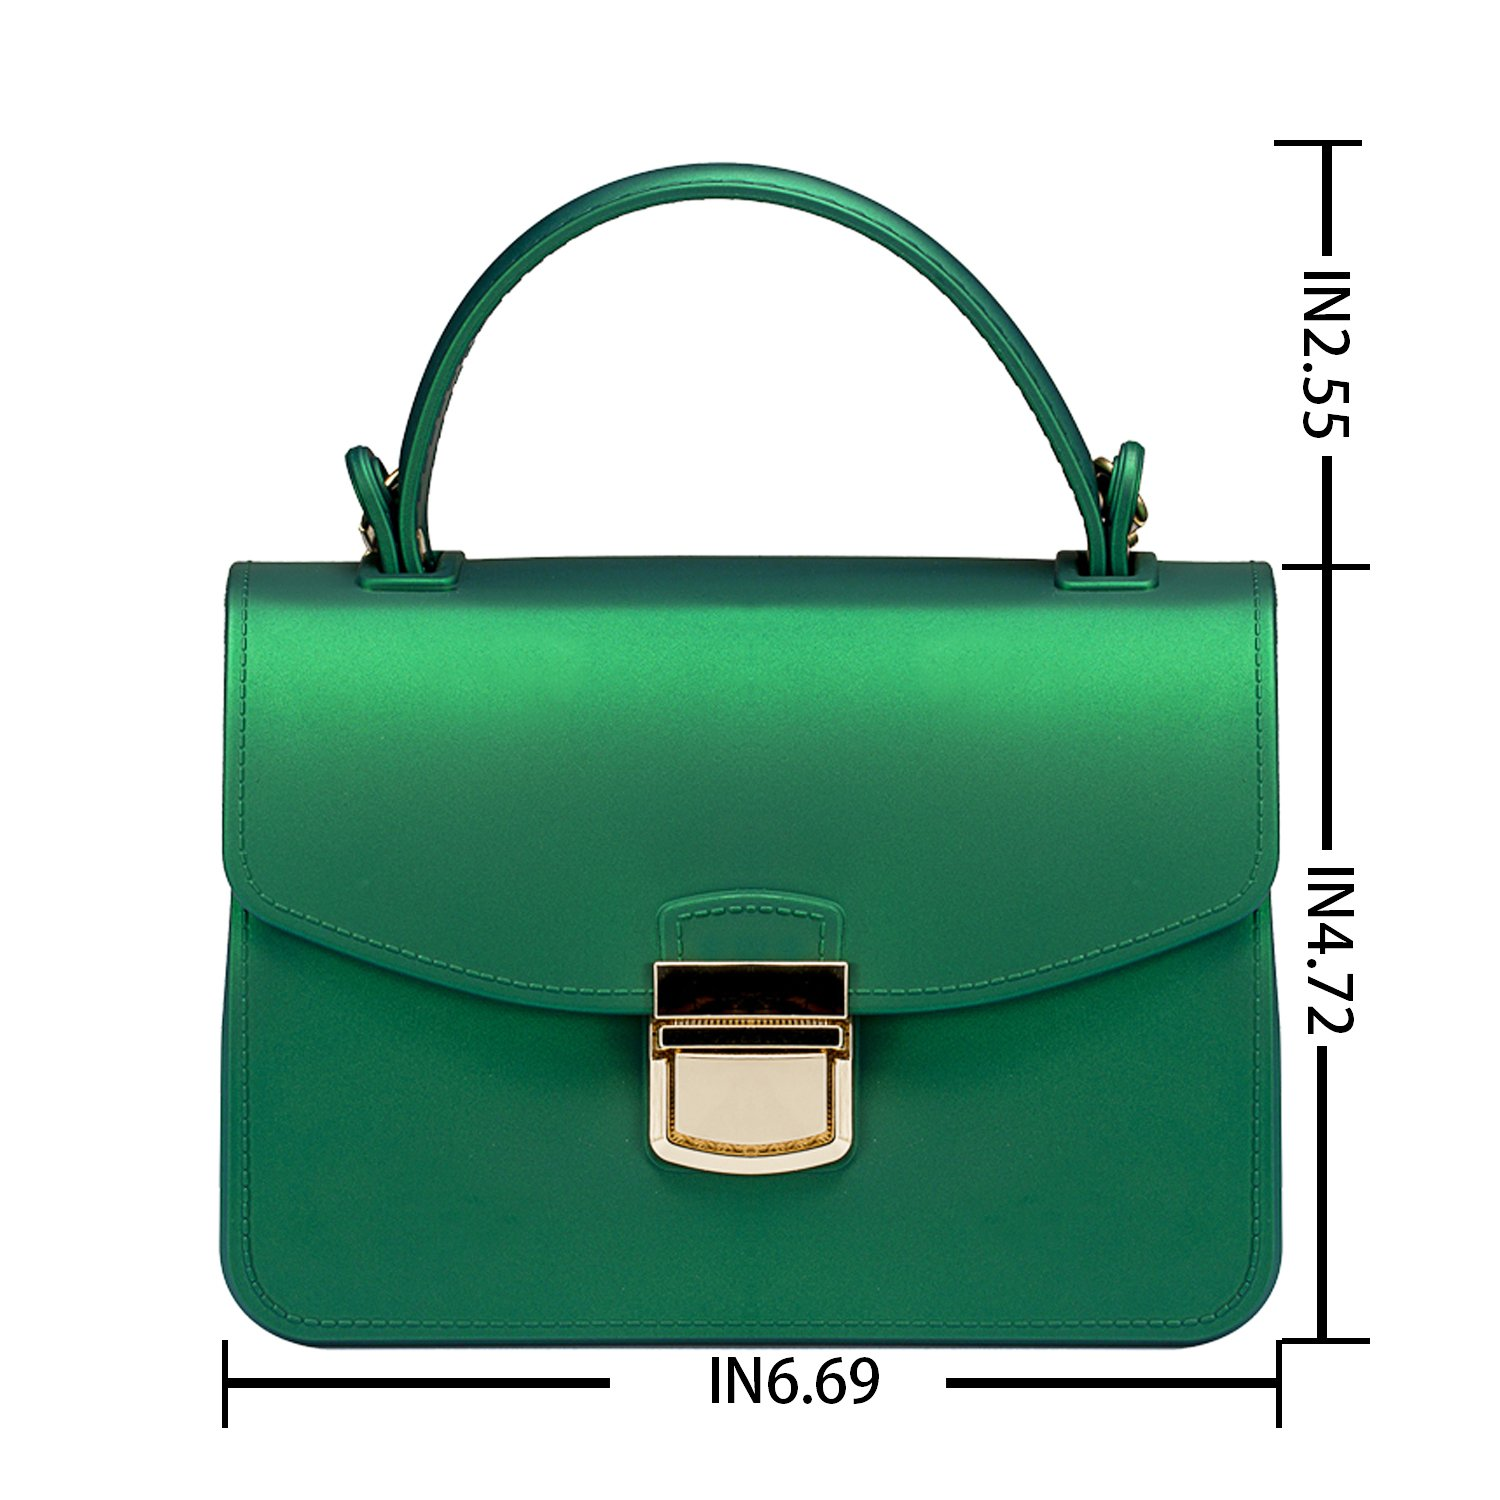 Small Top Handle Handbags Jelly Satchel Bags for Women Tote Purse - Green by Chrysansmile (Image #4)